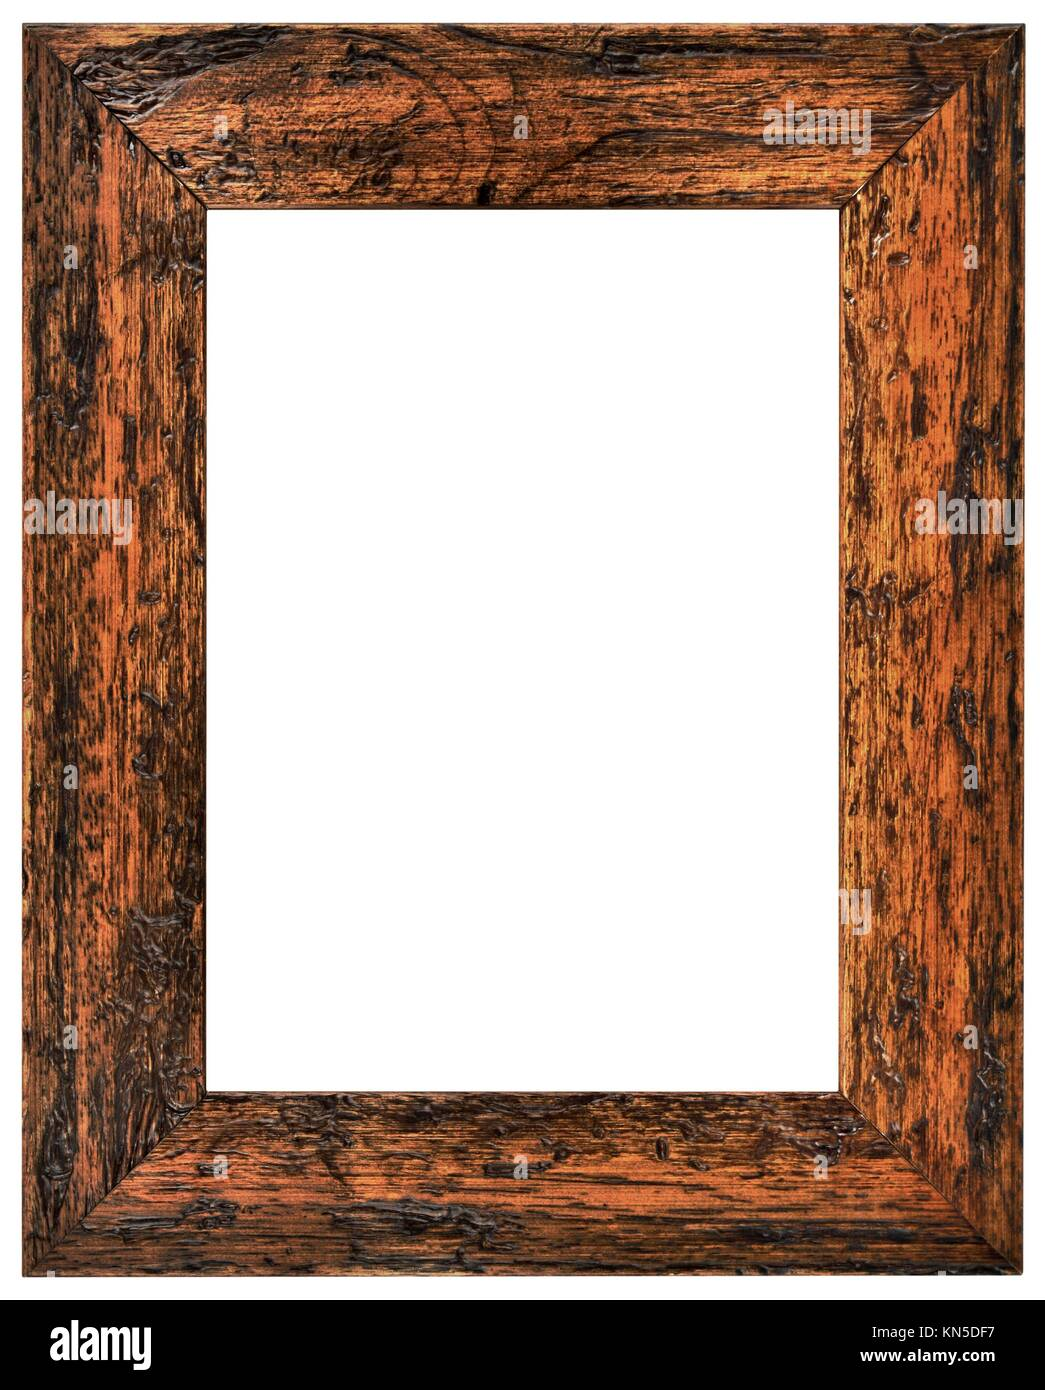 Beau Vintage Wooden Frame Isolated With Clipping Path.